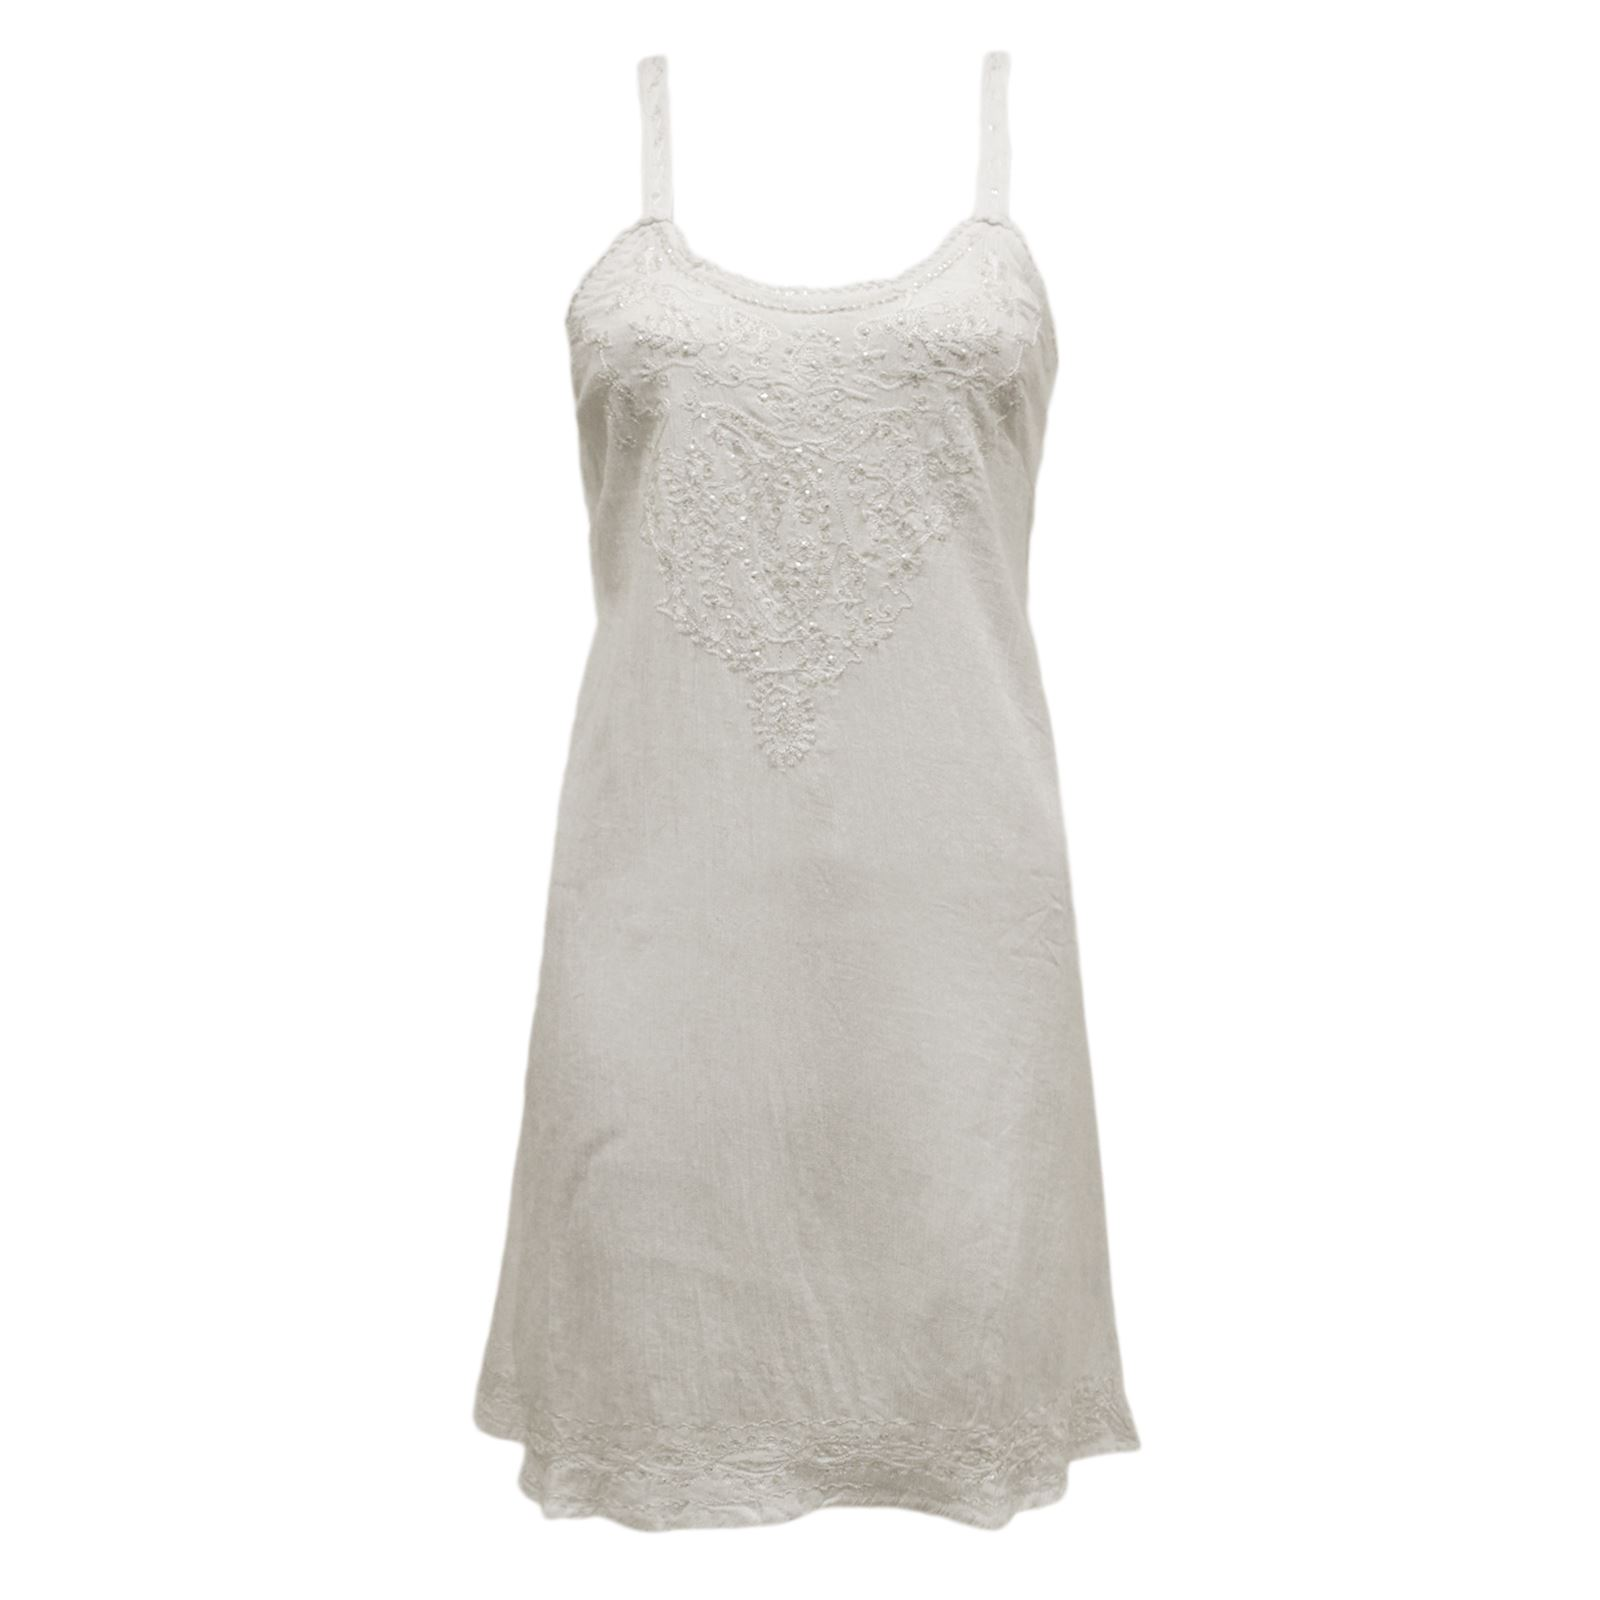 Find great deals on eBay for white cotton tunic. Shop with confidence. Skip to main content. eBay: Summer Cotton Women White Floral Lace Sleeve Blouse Boho Tunic T-Shirt Tee Tops. $ Buy It Now. Free Shipping. Cotton Tunic Tops for Women. Cotton Tunic Sweaters for Women. White Tunic Sweaters for Women.